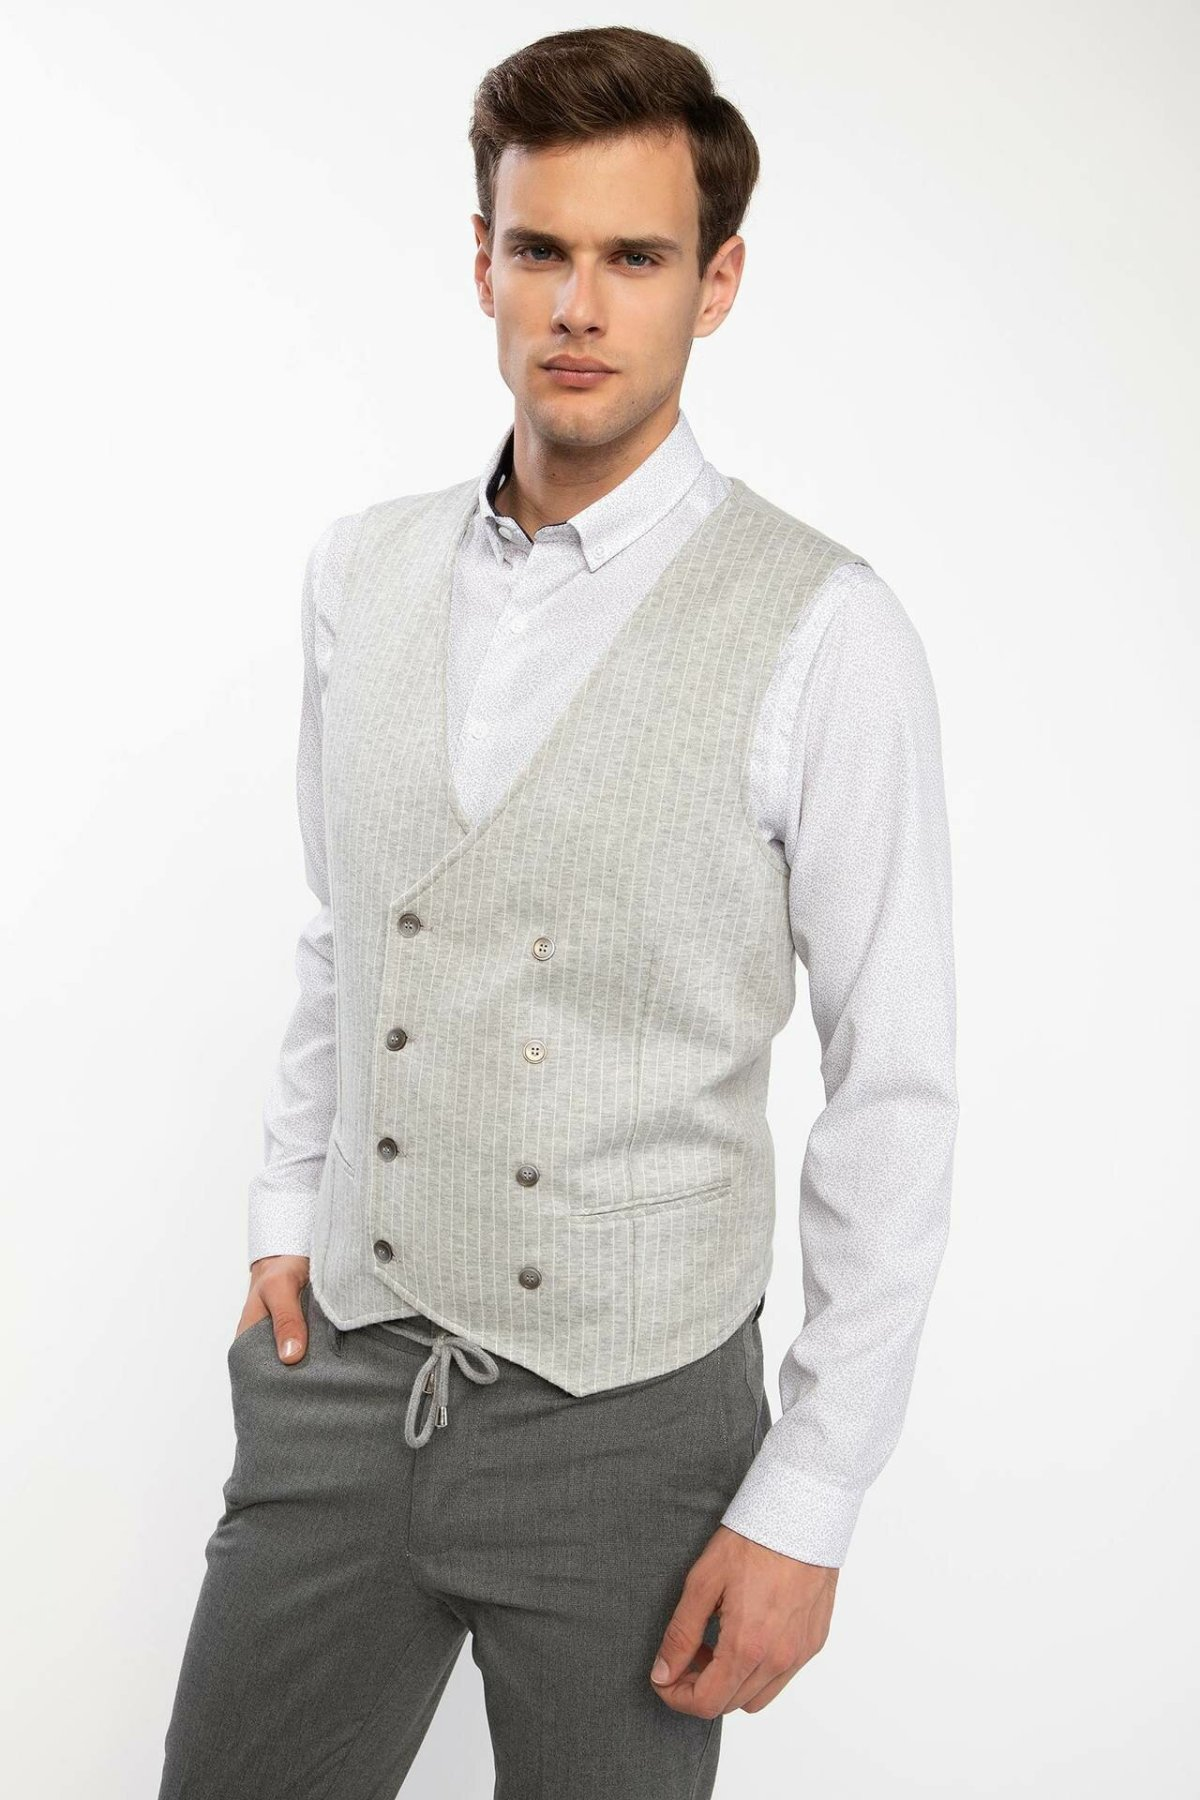 Defacto Vest Office-Style Fashion Cotton New Man Mens-J4366az18wn Joker High-Quality title=